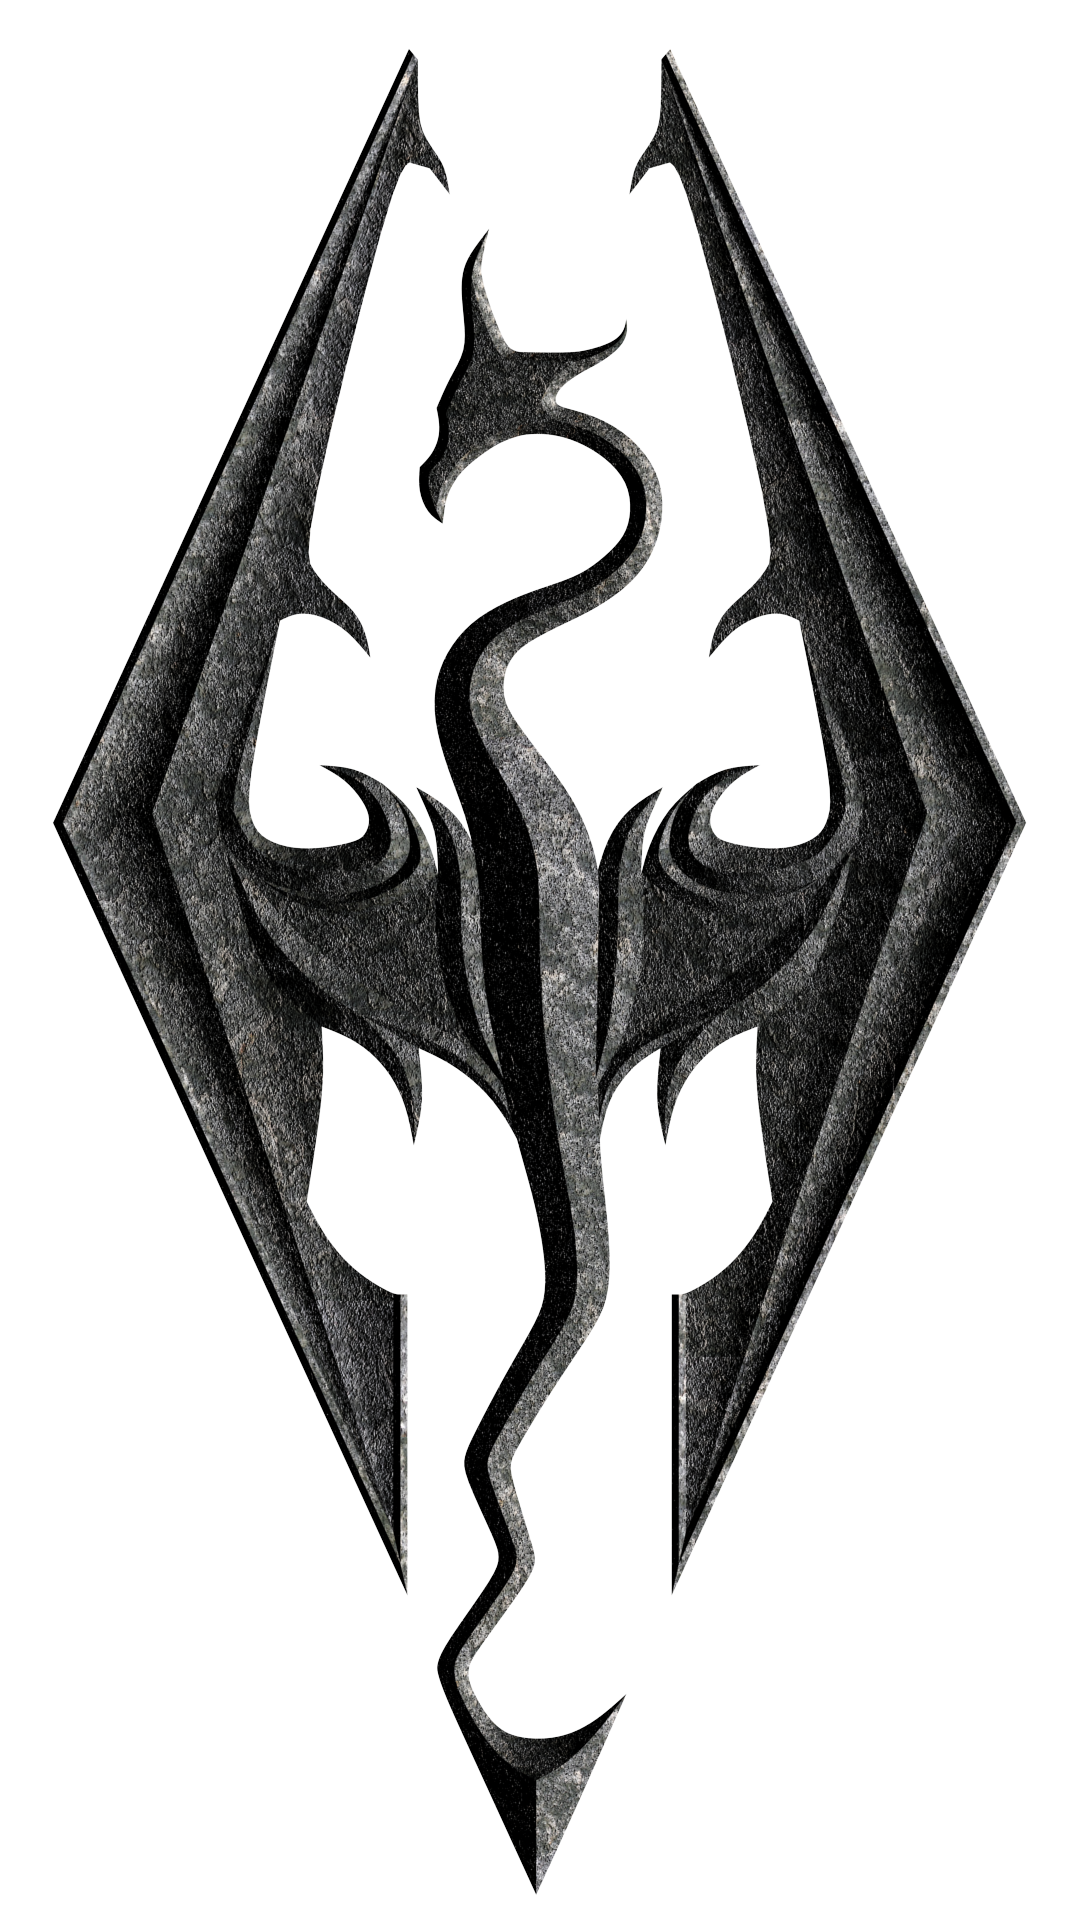 4ad0af499 skyrim dragon symbol - Google Search | Skyrim Tattoos | Skyrim ...